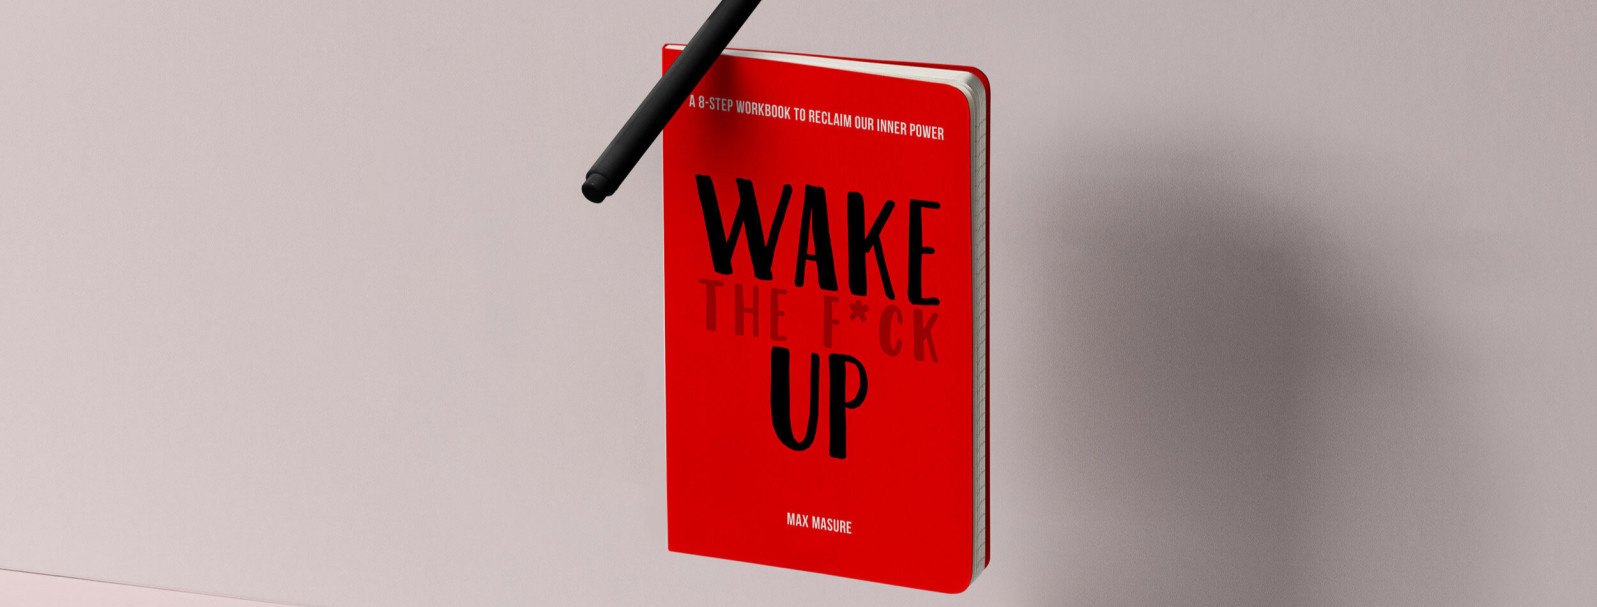 Workshop: Wake The F*ck Up! Let's Reclaim Our Inner Power